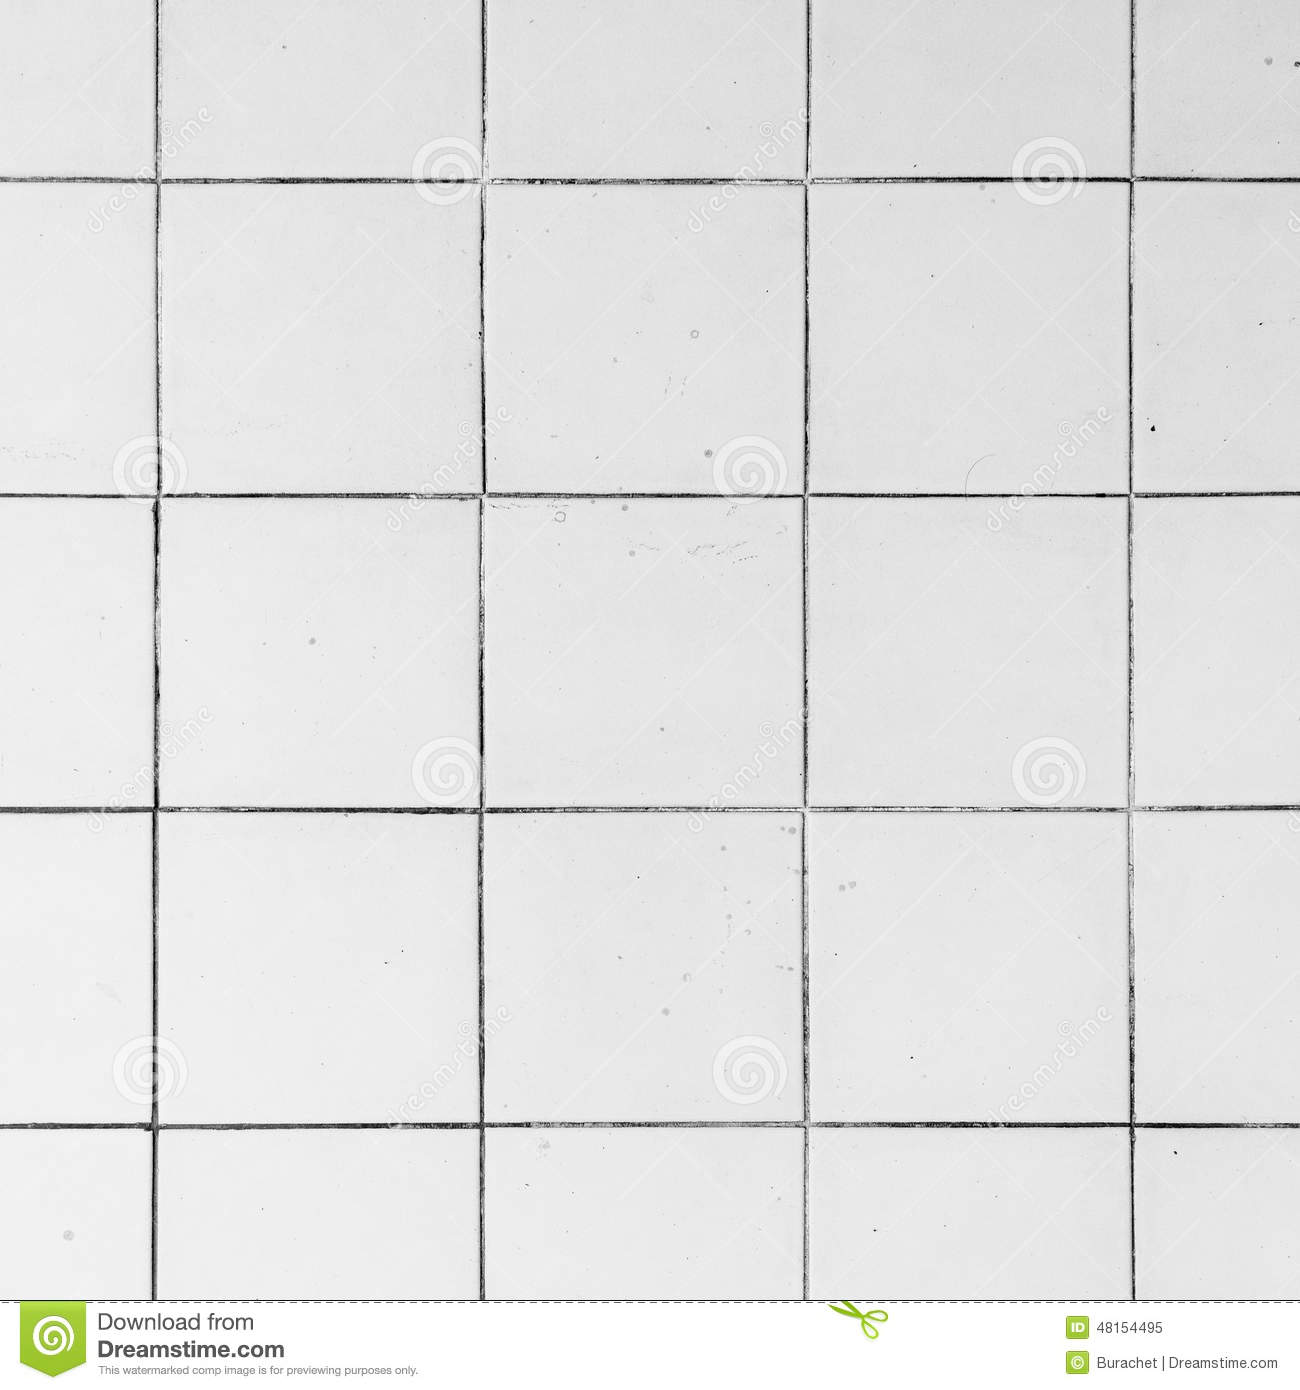 White tiles stock image Image of pattern damaged cement